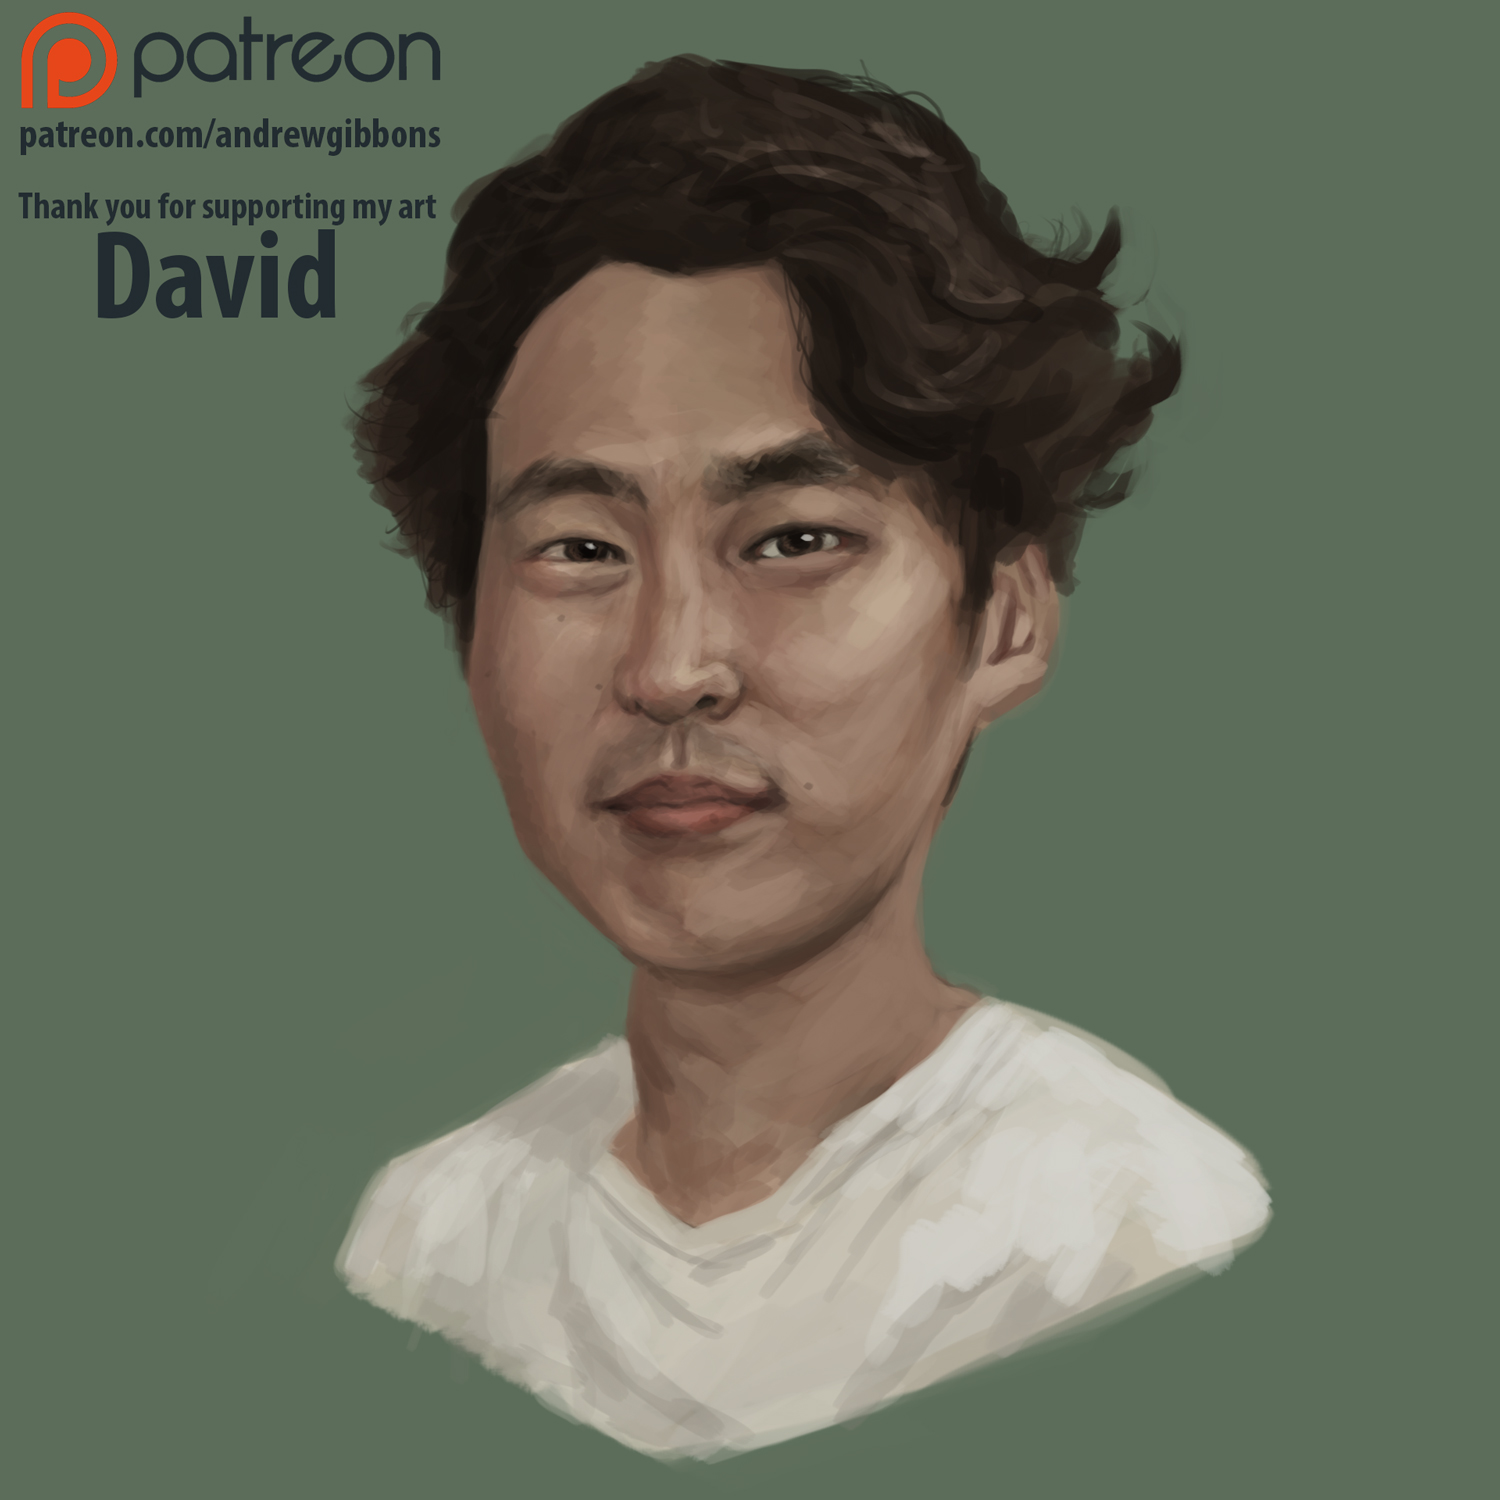 [Image: patron_portrait___david_by_andrew_gibbons-dbgg3gp.jpg]